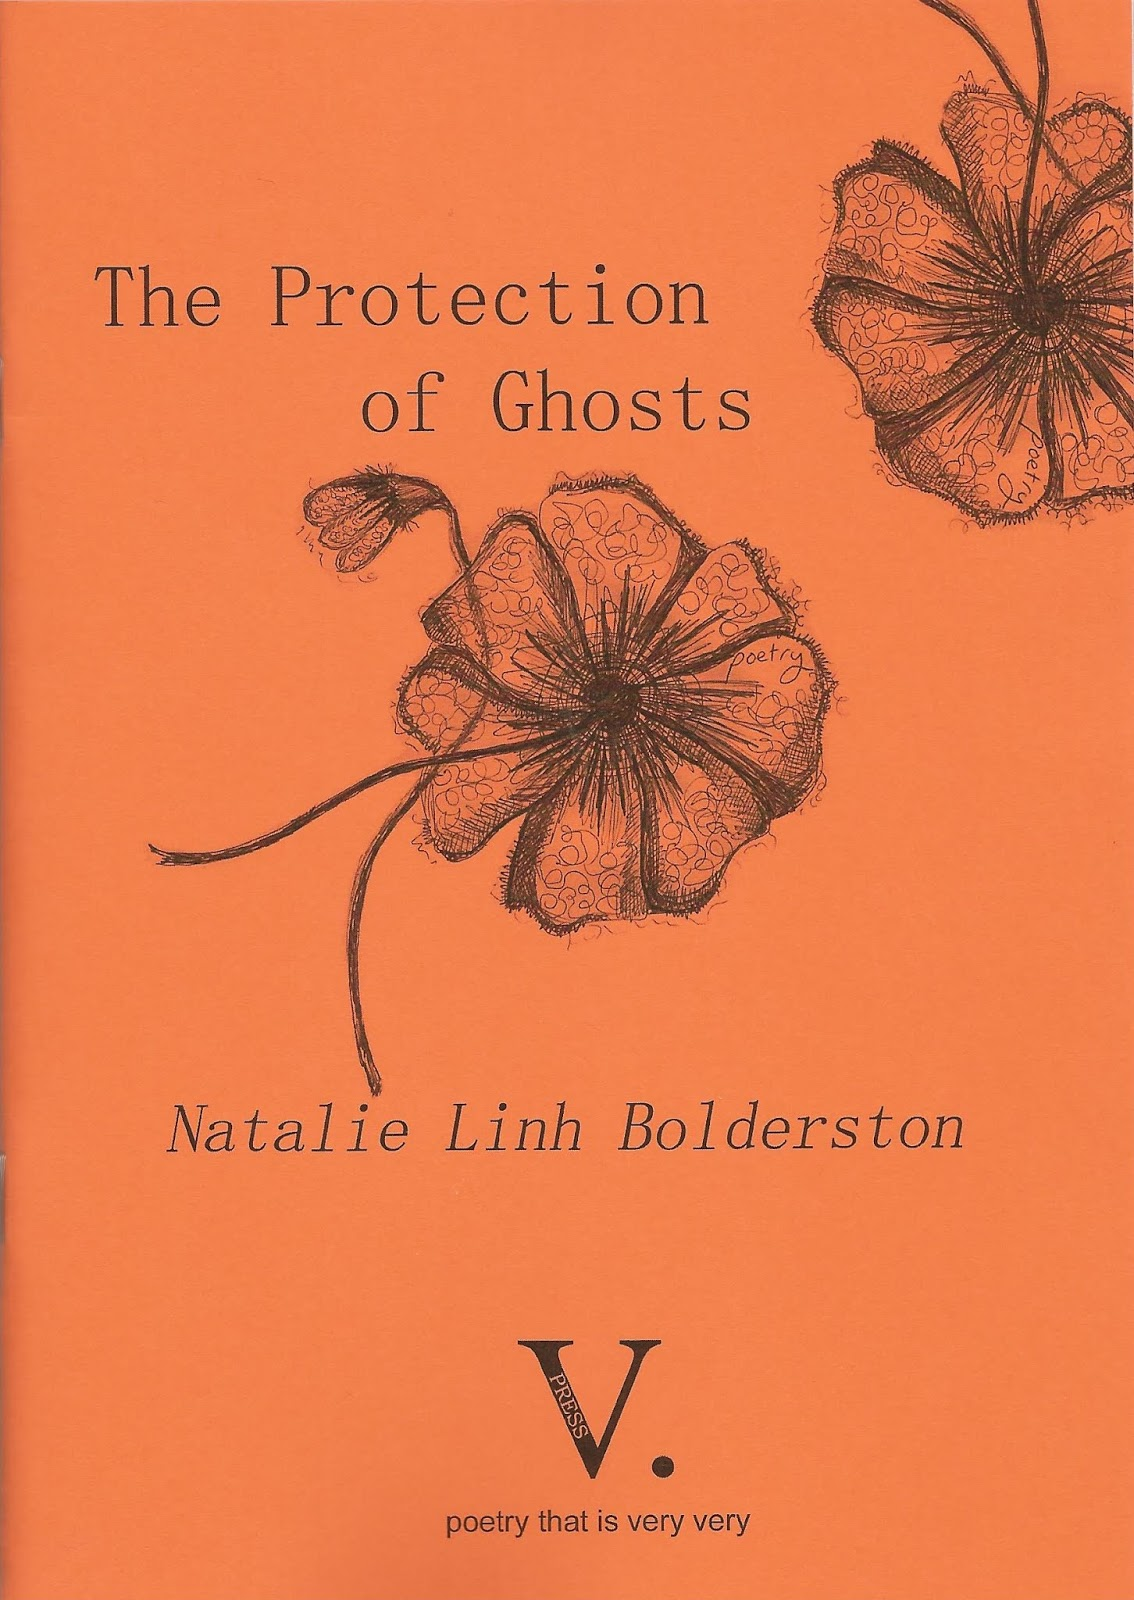 Natalie Linh Bolderston – The Protection of Ghosts